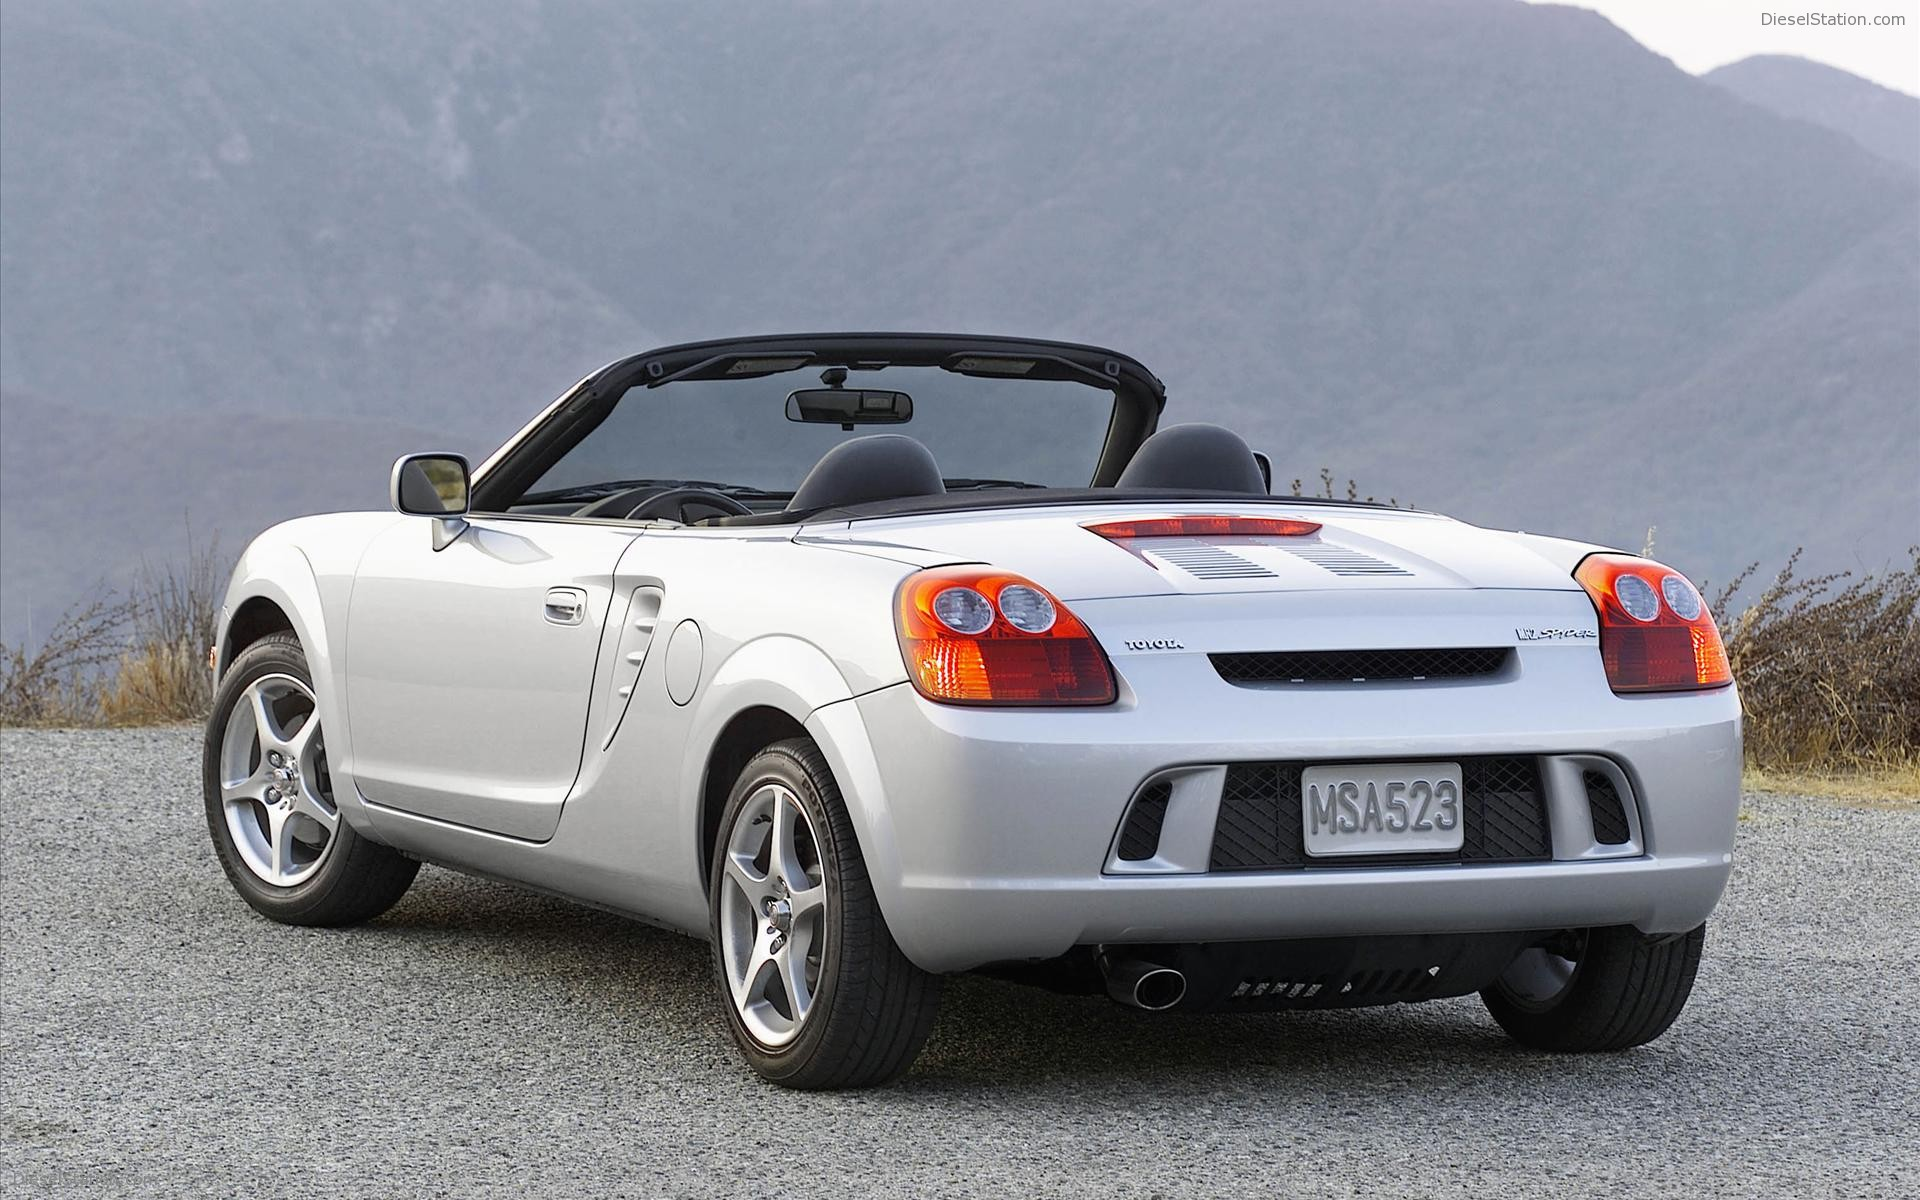 2005 Toyota Mr2 Spyder #21